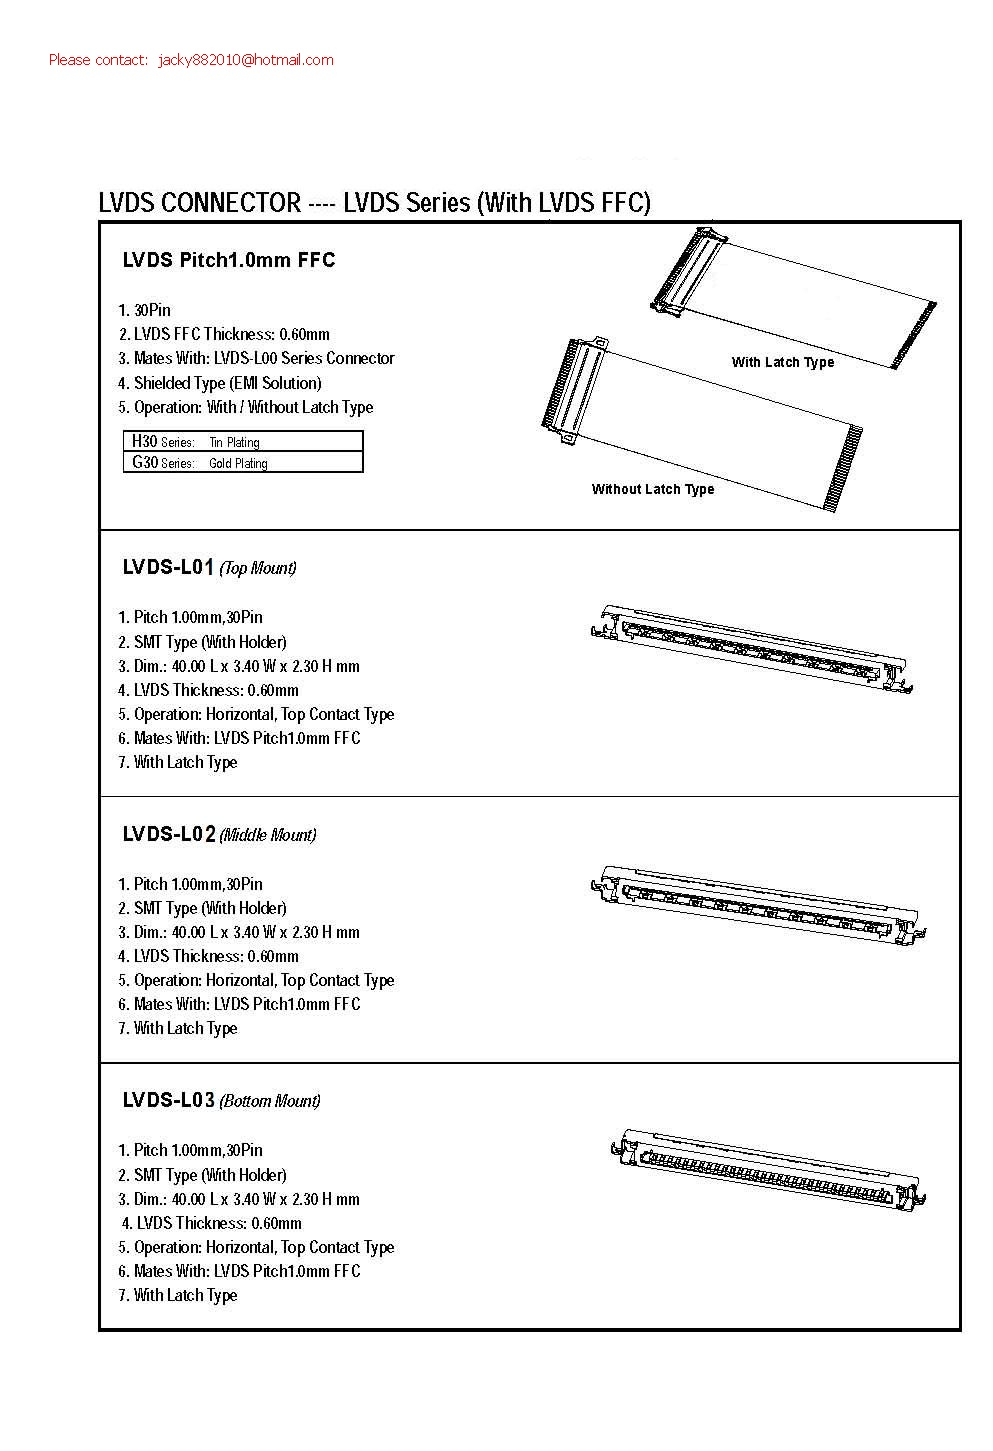 1.0 mm picth FFC LVDS cables